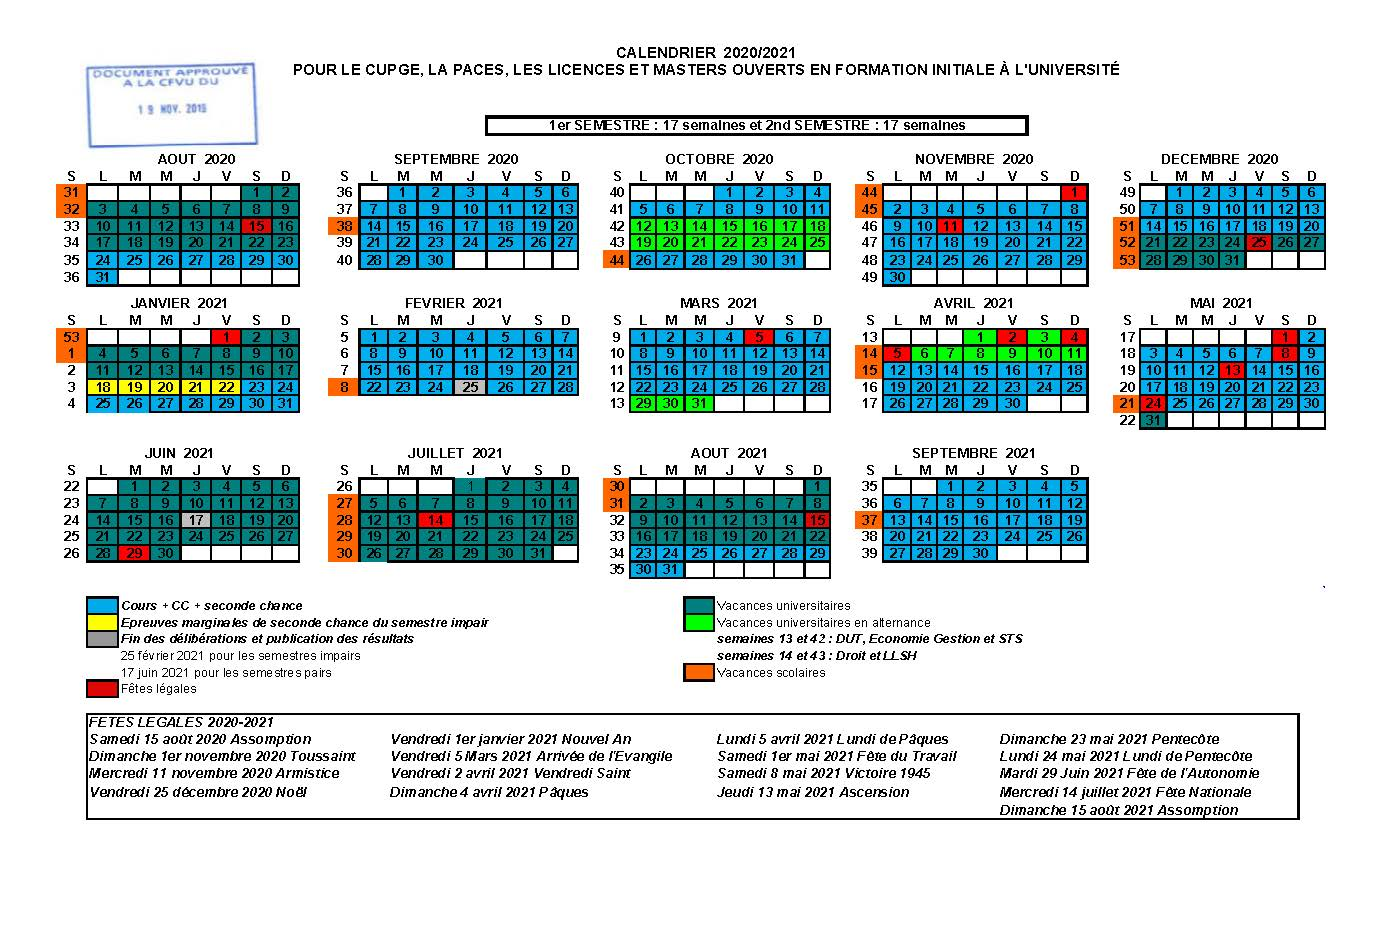 Calendrier may 2021: Calendrier Universitaire Paris 7 2022 2021